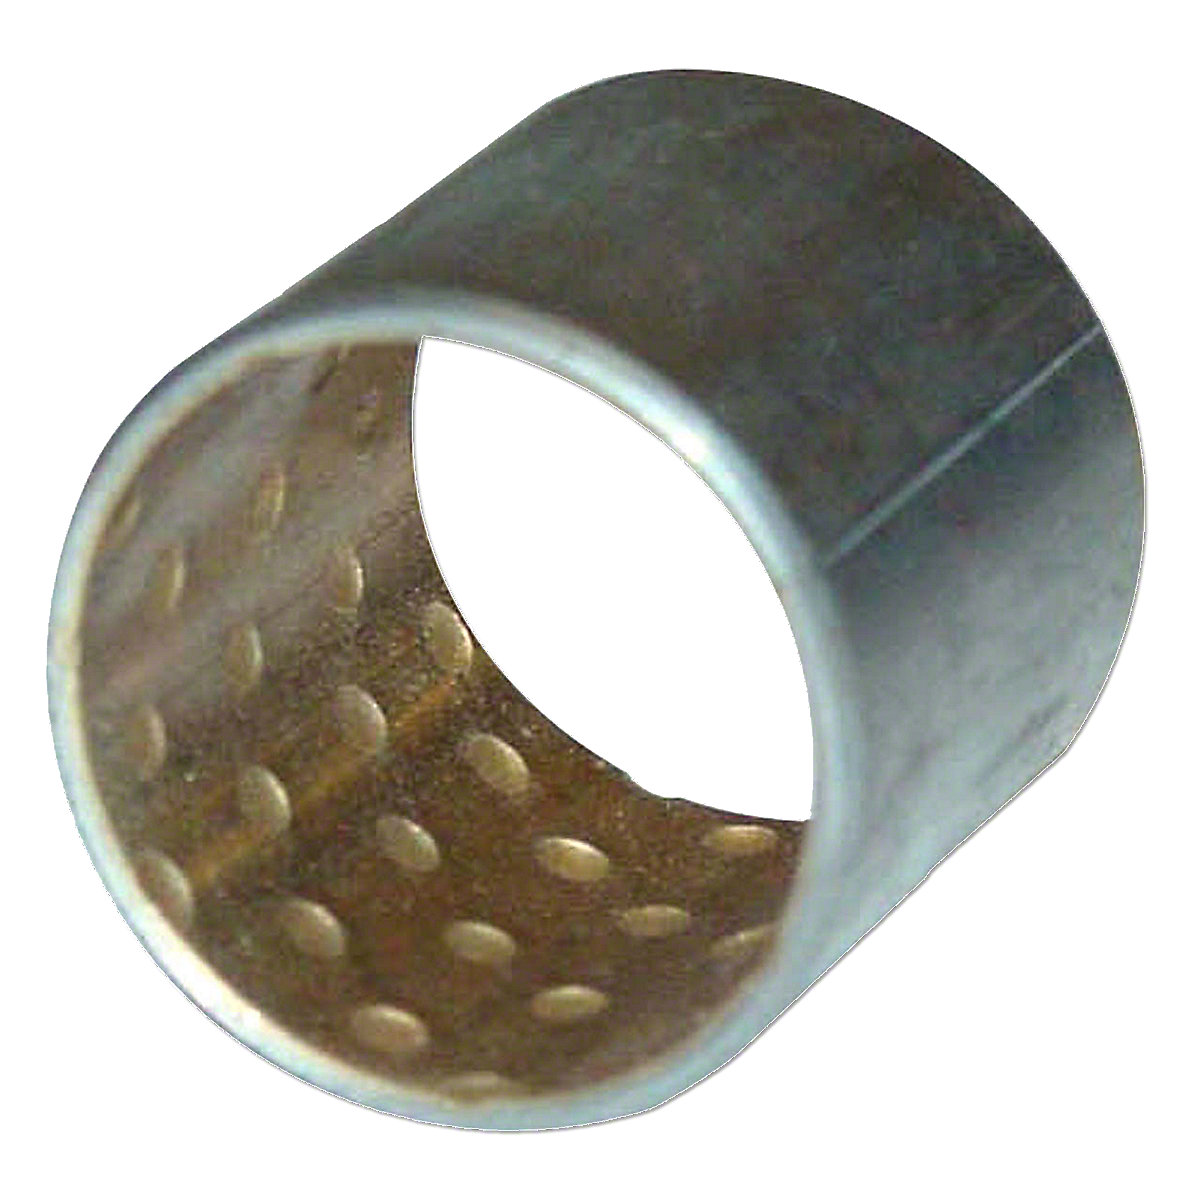 Lower Steering Shaft Support Bushing For Allis Chalmers: D14, D15, D17, D19.